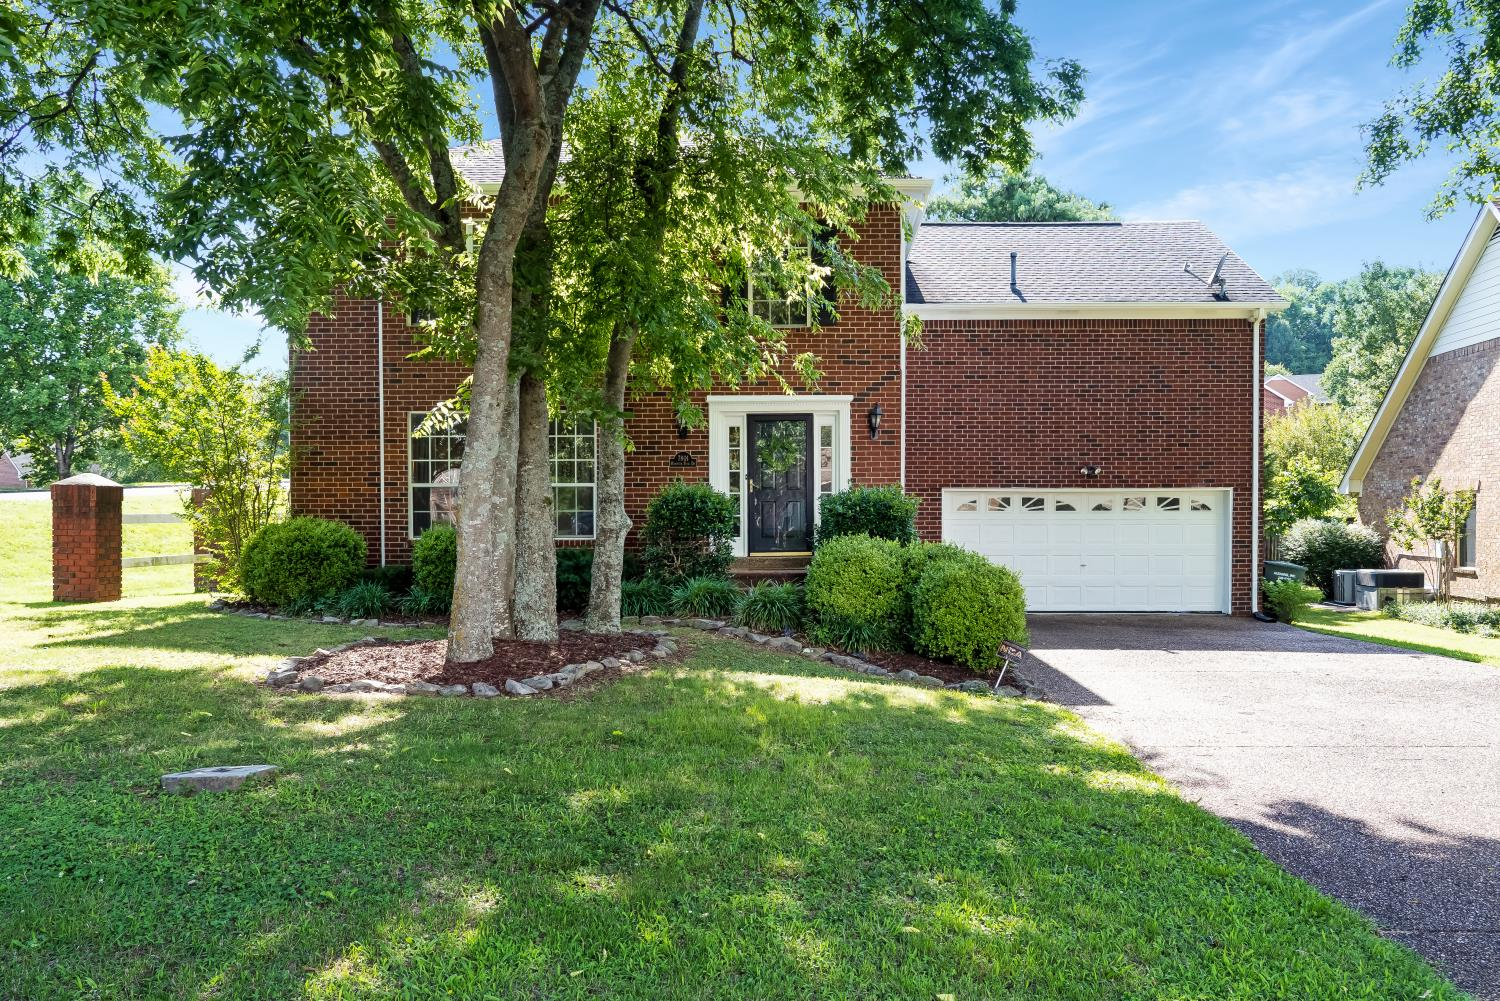 7801 Harpeth View Dr, Bellevue in Davidson County County, TN 37221 Home for Sale